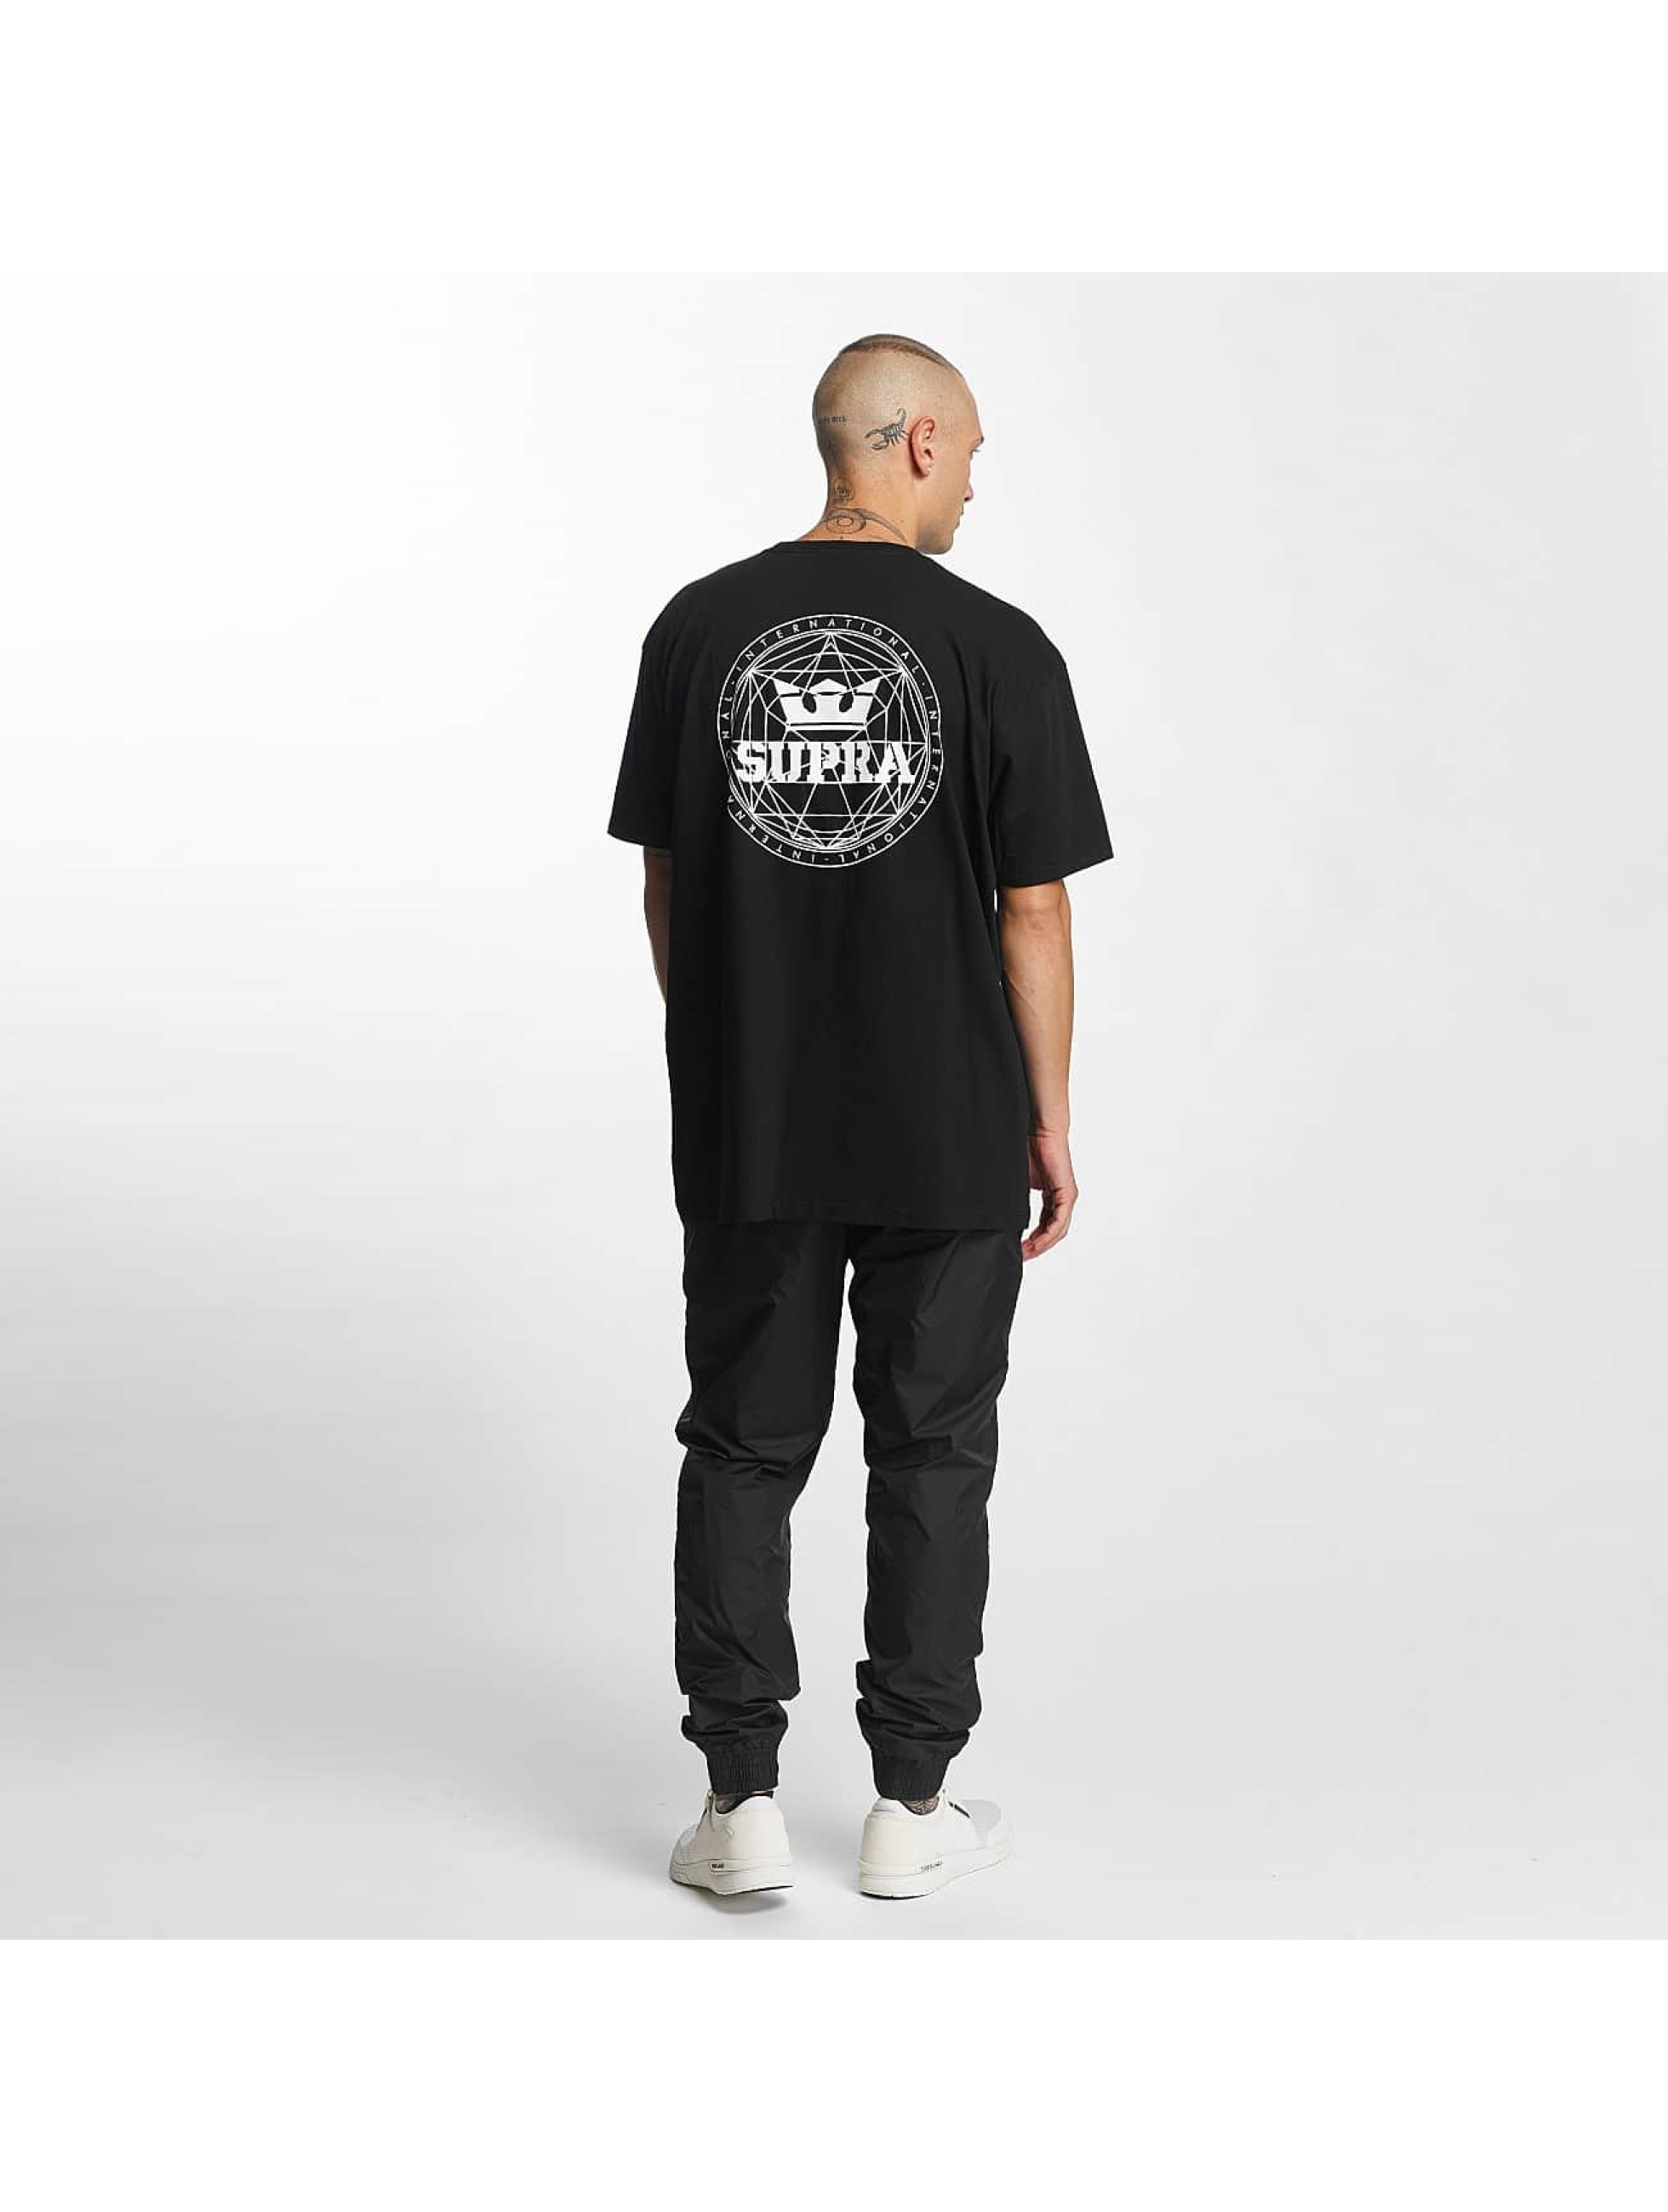 Supra T-Shirt Geo Regular schwarz